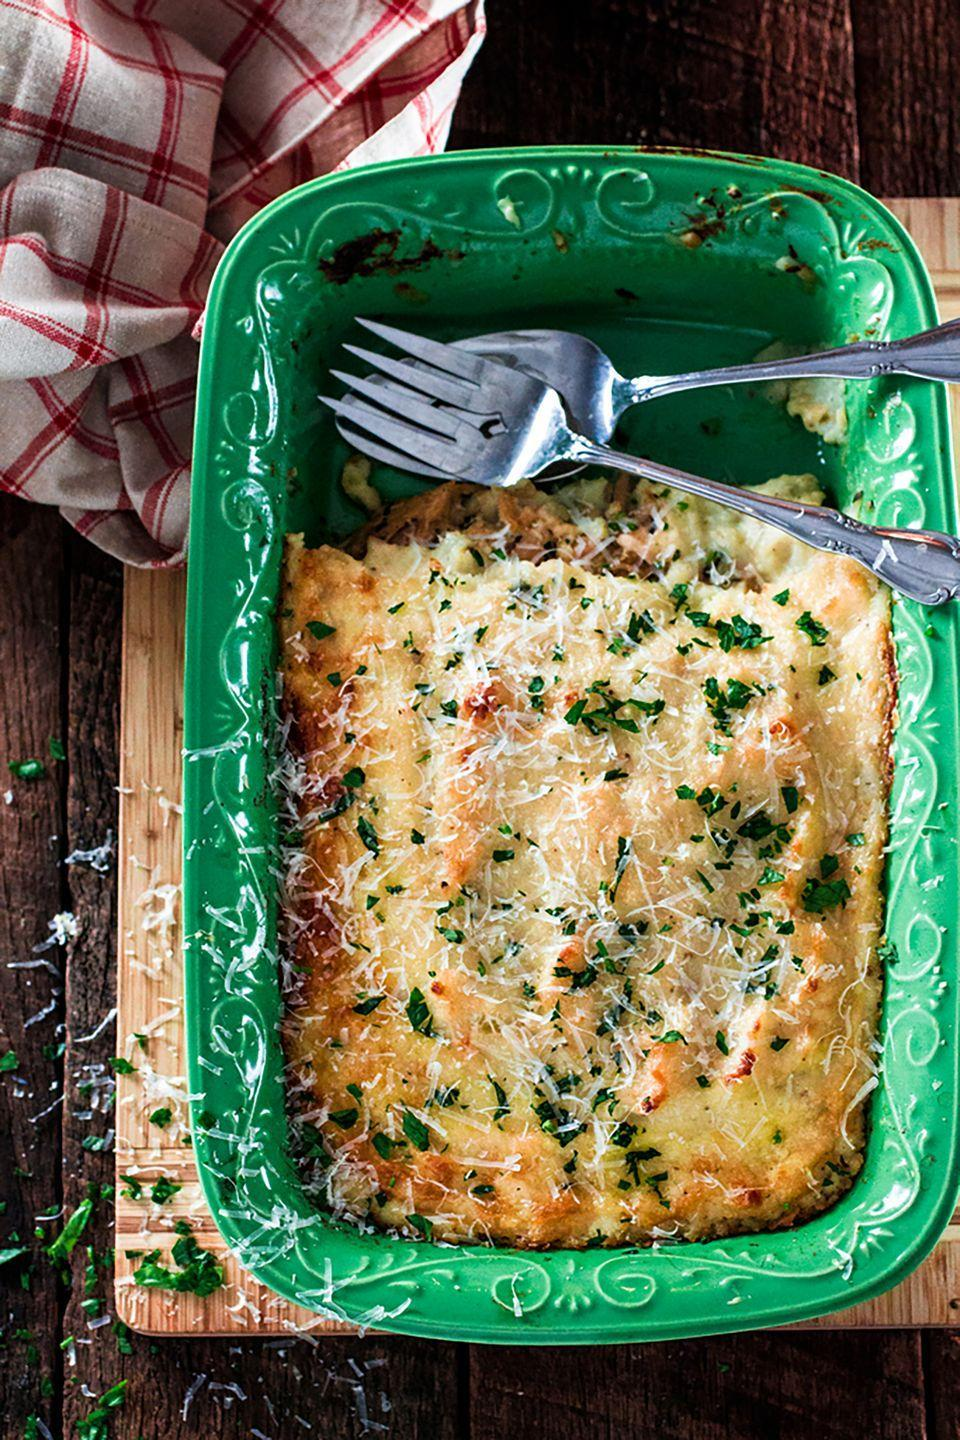 """<p>You'll be doing plenty of cooking on Thanksgiving day. The next morning, feed your whole family without a ton of prep time. </p><p><strong>Get the recipe at <a href=""""http://www.oliviascuisine.com/turkey-and-mashed-potatoes-casserole/"""" rel=""""nofollow noopener"""" target=""""_blank"""" data-ylk=""""slk:Olivia's Cuisine"""" class=""""link rapid-noclick-resp"""">Olivia's Cuisine</a>. </strong></p><p><a class=""""link rapid-noclick-resp"""" href=""""https://www.amazon.com/Tramontina-80114-535DS-Professional-Restaurant/dp/B009HBKQ16/?tag=syn-yahoo-20&ascsubtag=%5Bartid%7C10050.g.2144%5Bsrc%7Cyahoo-us"""" rel=""""nofollow noopener"""" target=""""_blank"""" data-ylk=""""slk:shop skillets"""">shop skillets</a><br></p>"""